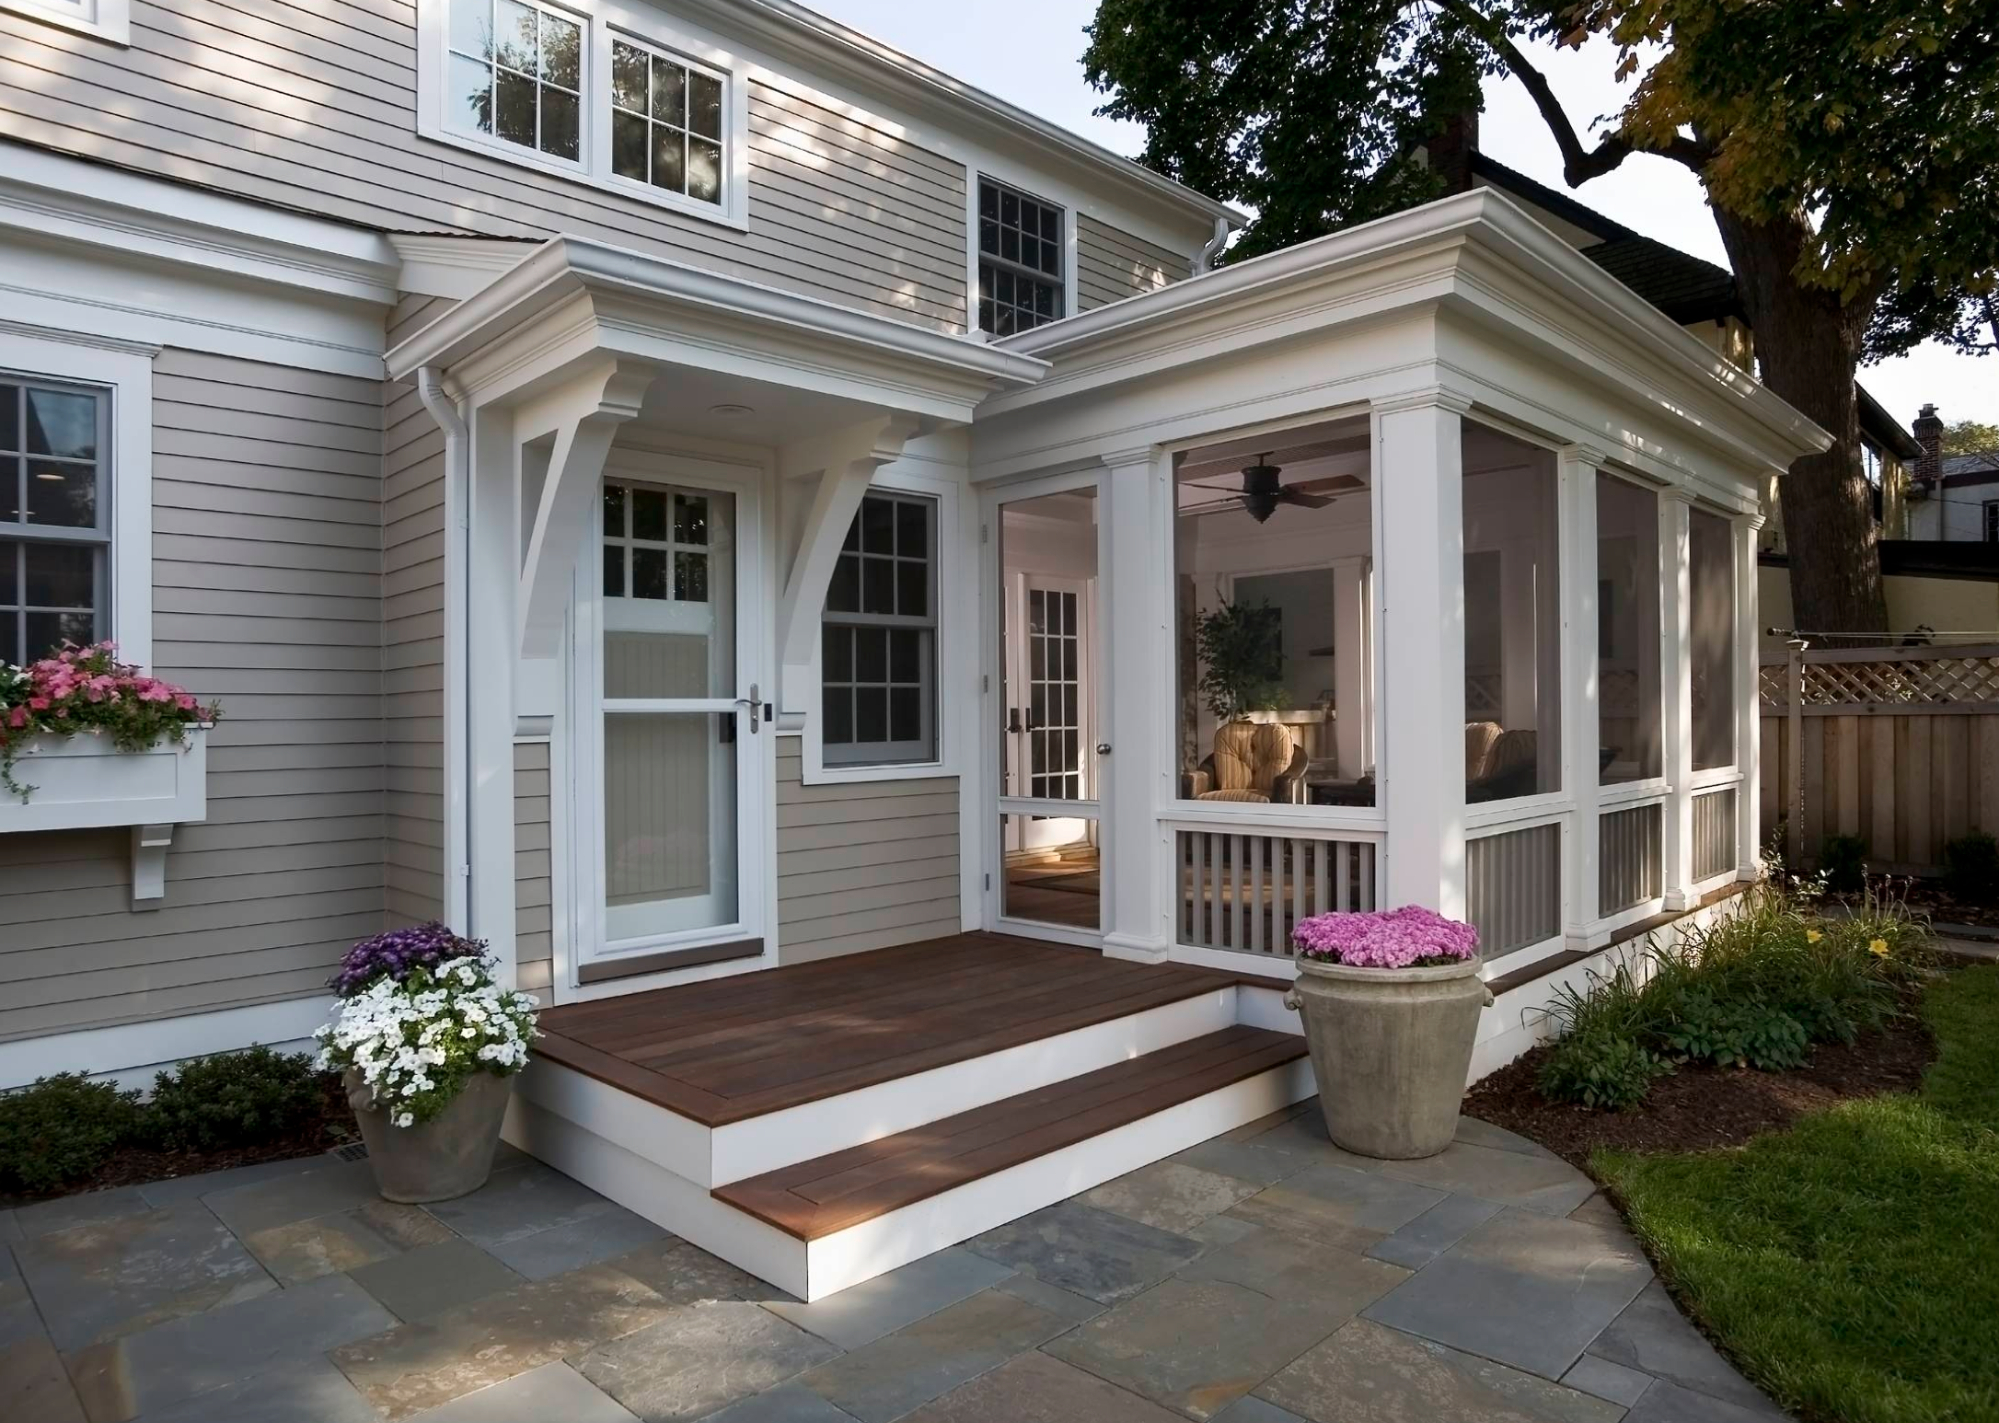 Screened In Porch With Hot Tub Ideas